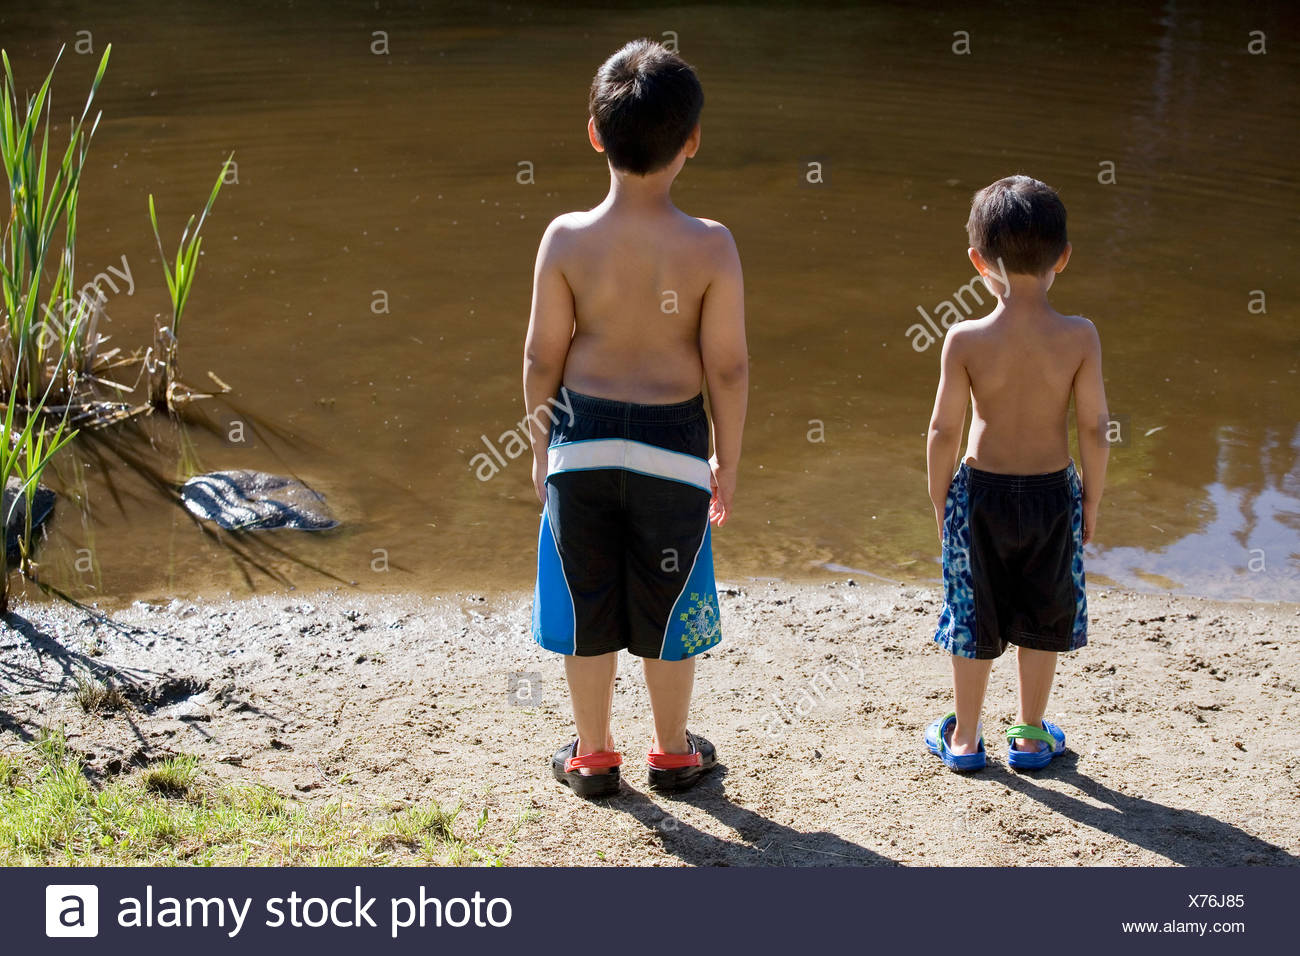 canadian born, vietnamese boys standing by the lakeshore, Val David, Quebec, Canada. - Stock Image